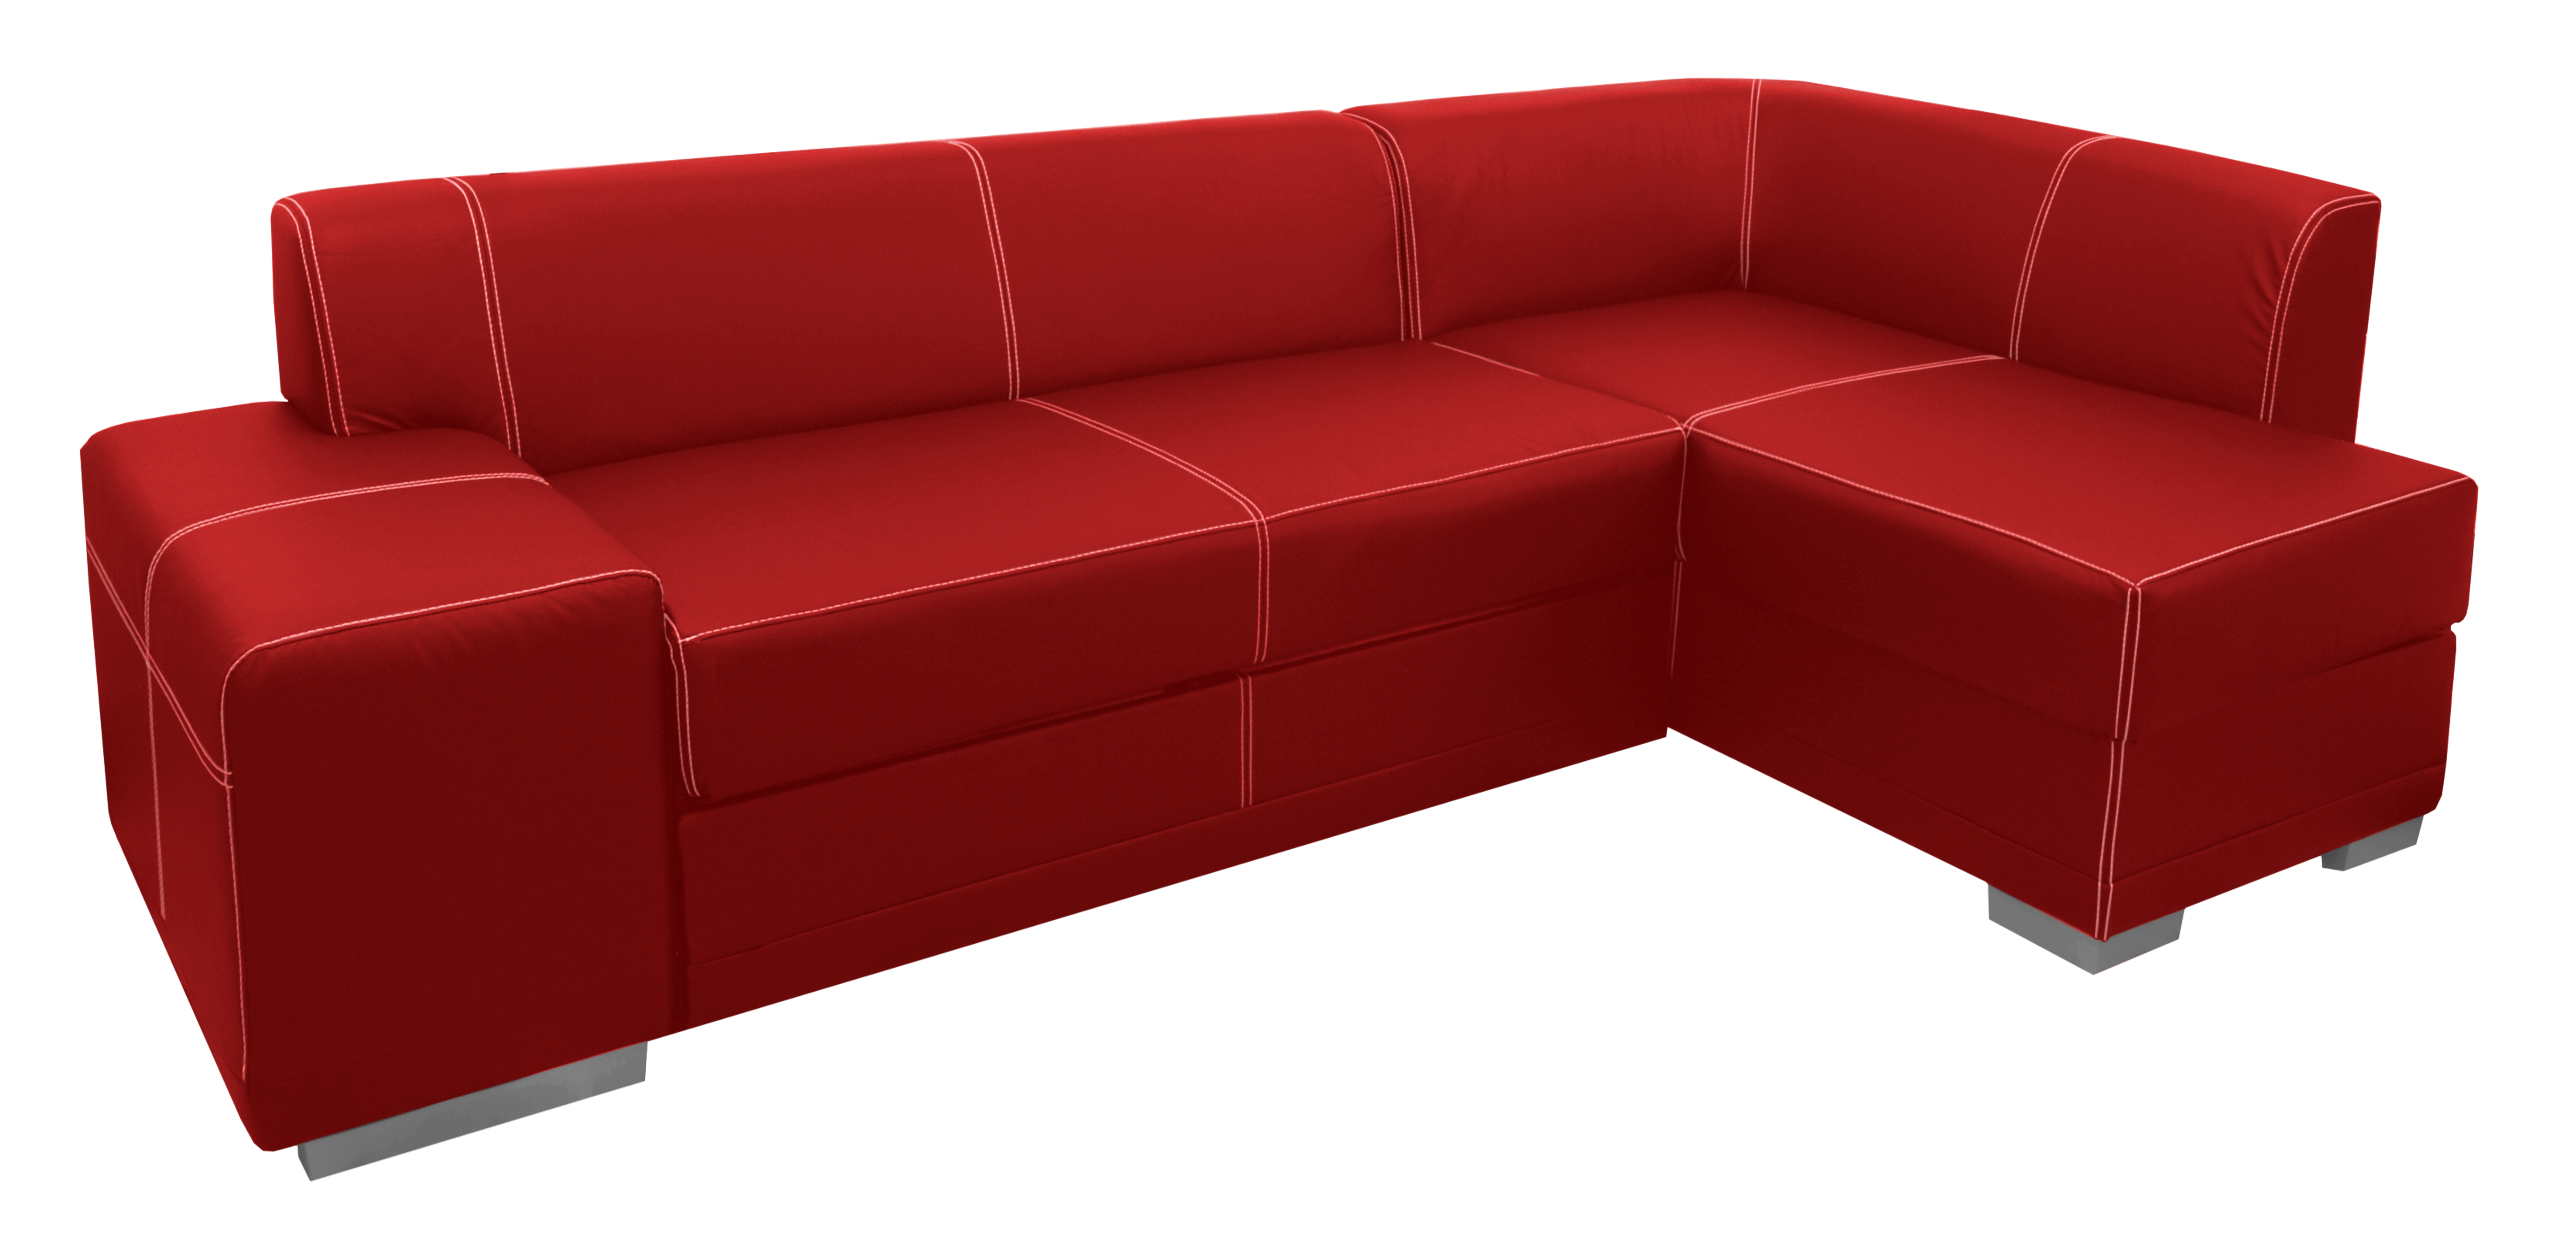 how dangerous is your couch couch couch out of a home leather